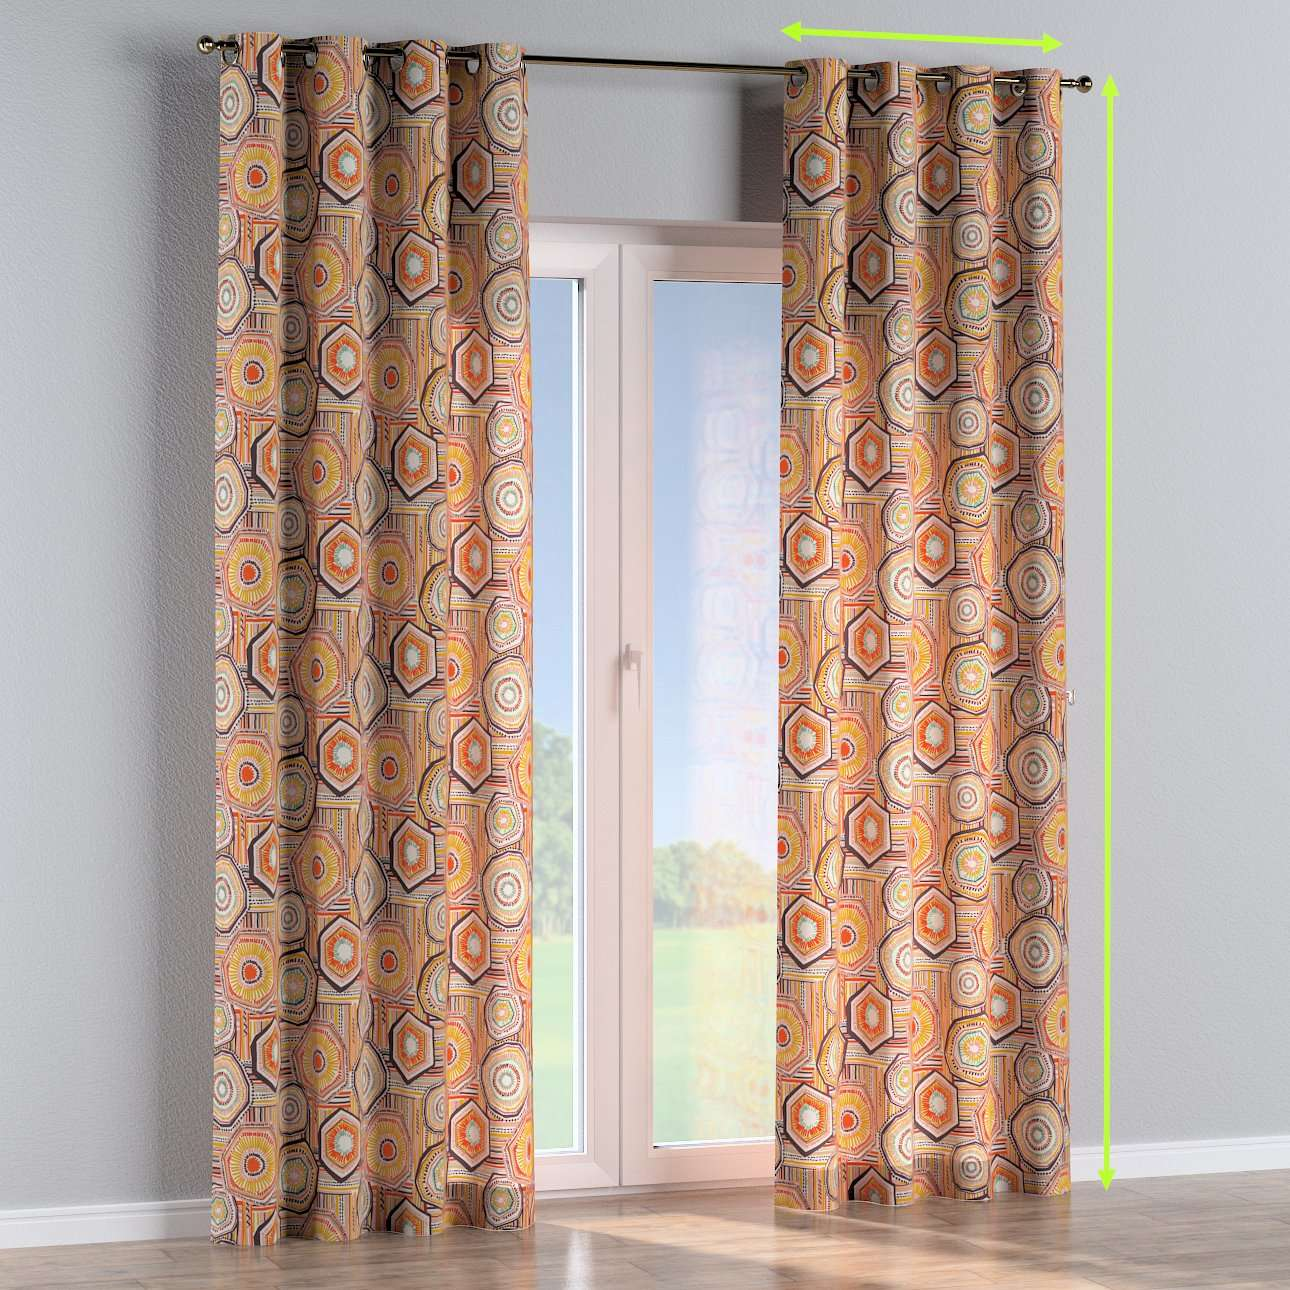 Eyelet lined curtains in collection New Art, fabric: 141-55